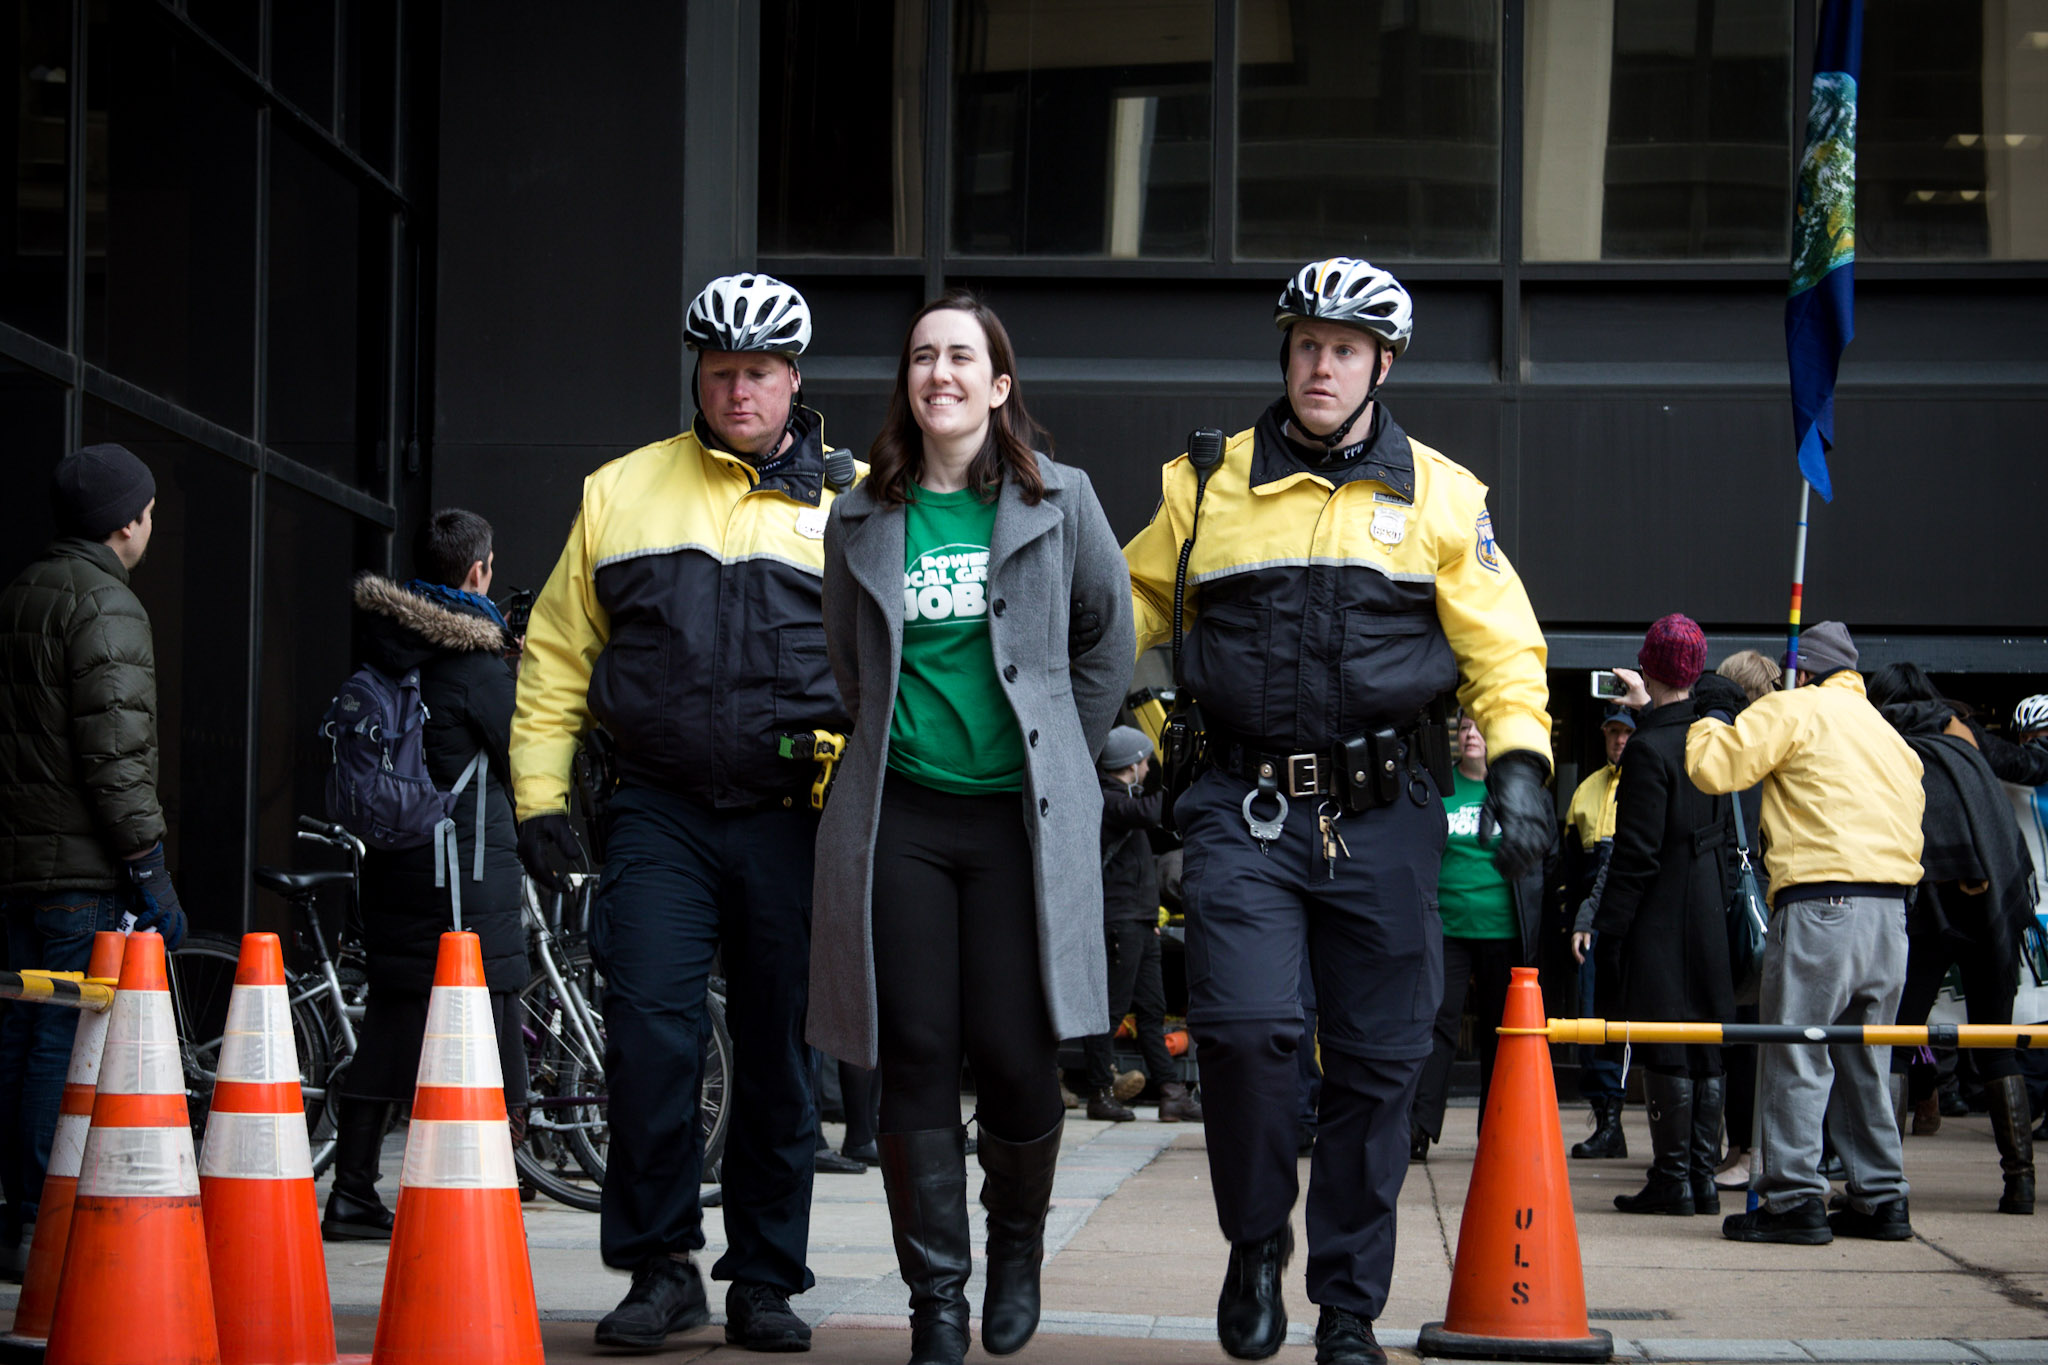 Christy Tavernelli being arrested for challenging PECO